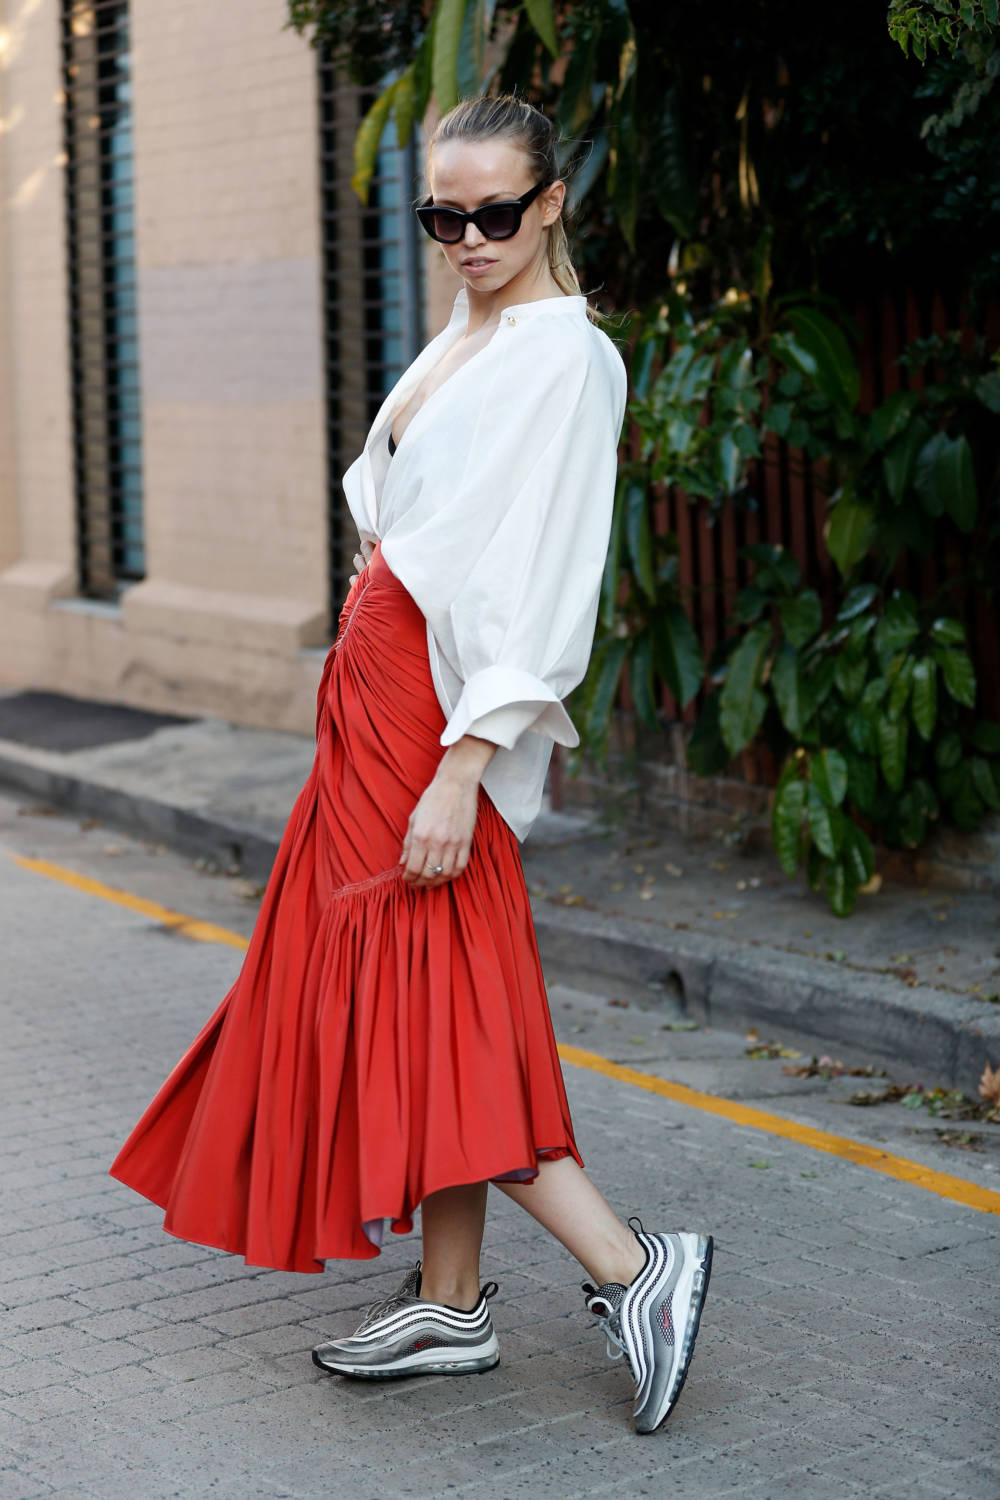 Street Style In Sydney - May 2018